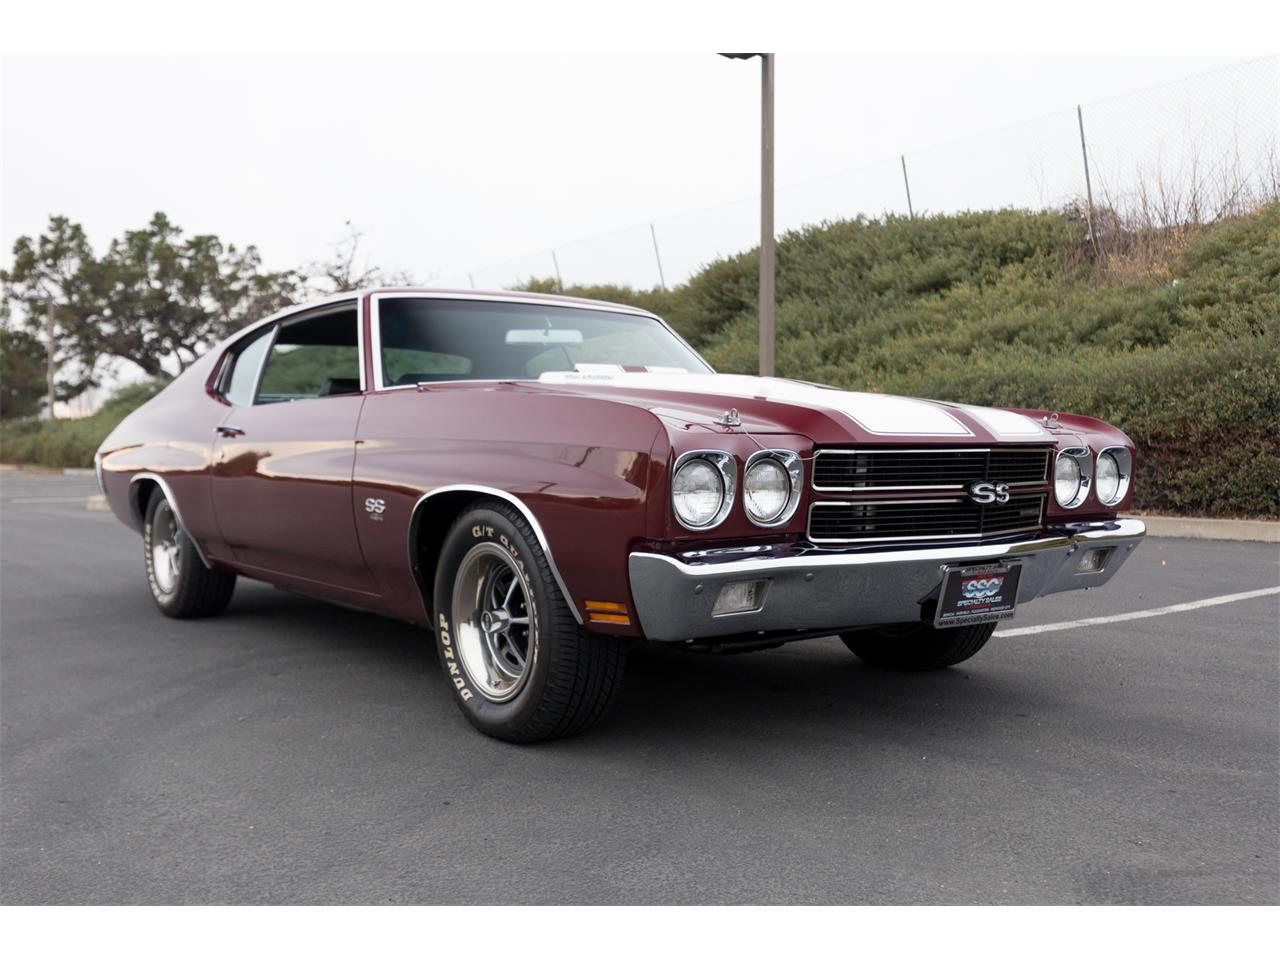 Large Picture of '70 Chevrolet Chevelle SS - $58,990.00 - MN2G